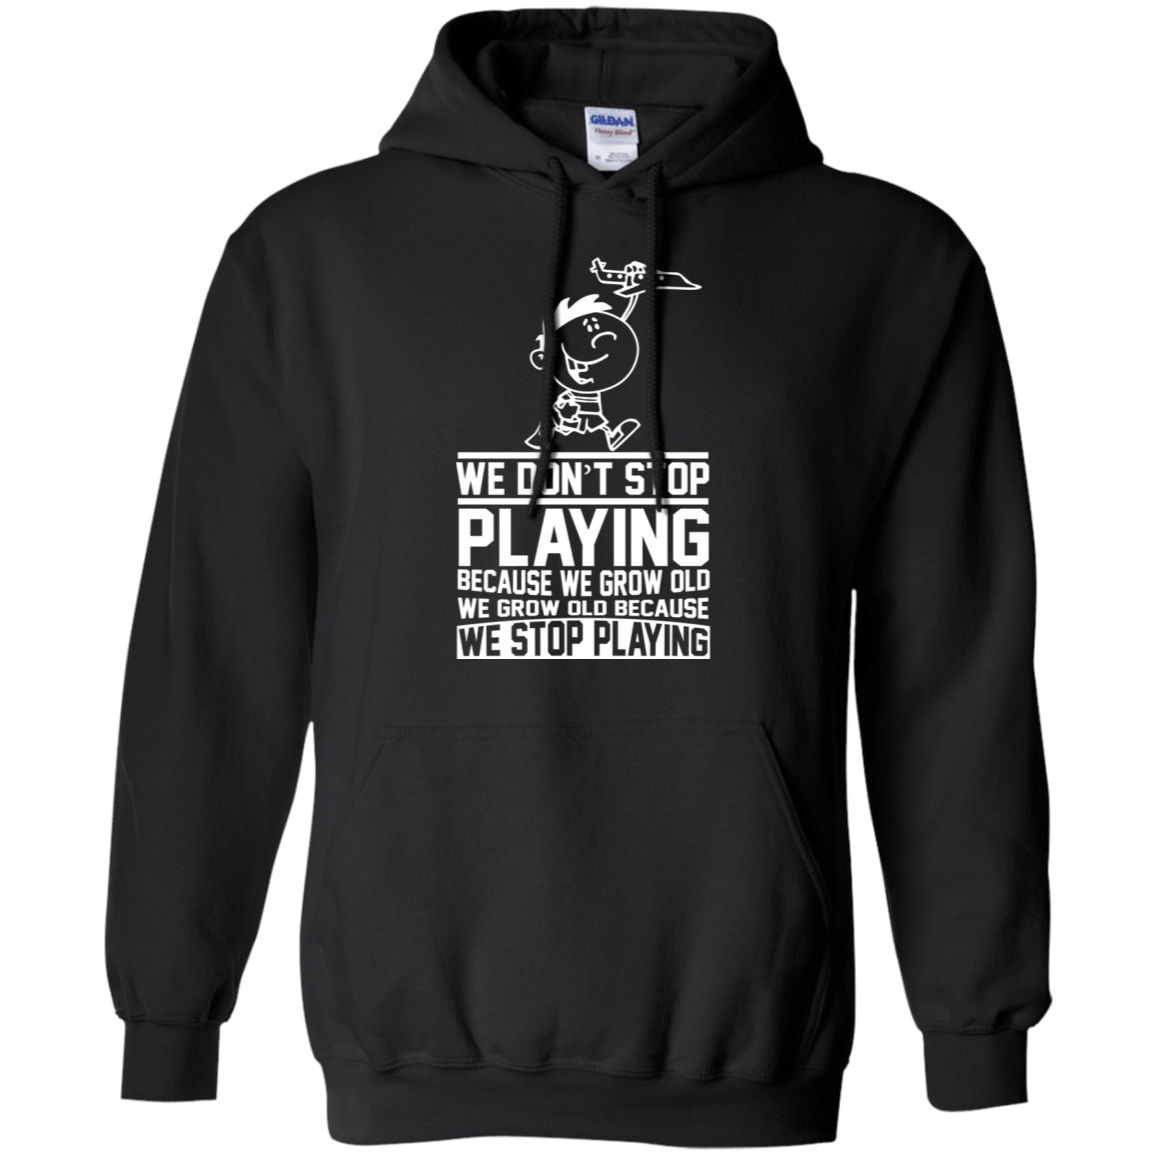 We Don't Stop Playing Because We Grow Old 541-4740-72773017-23087 - Tee Ript